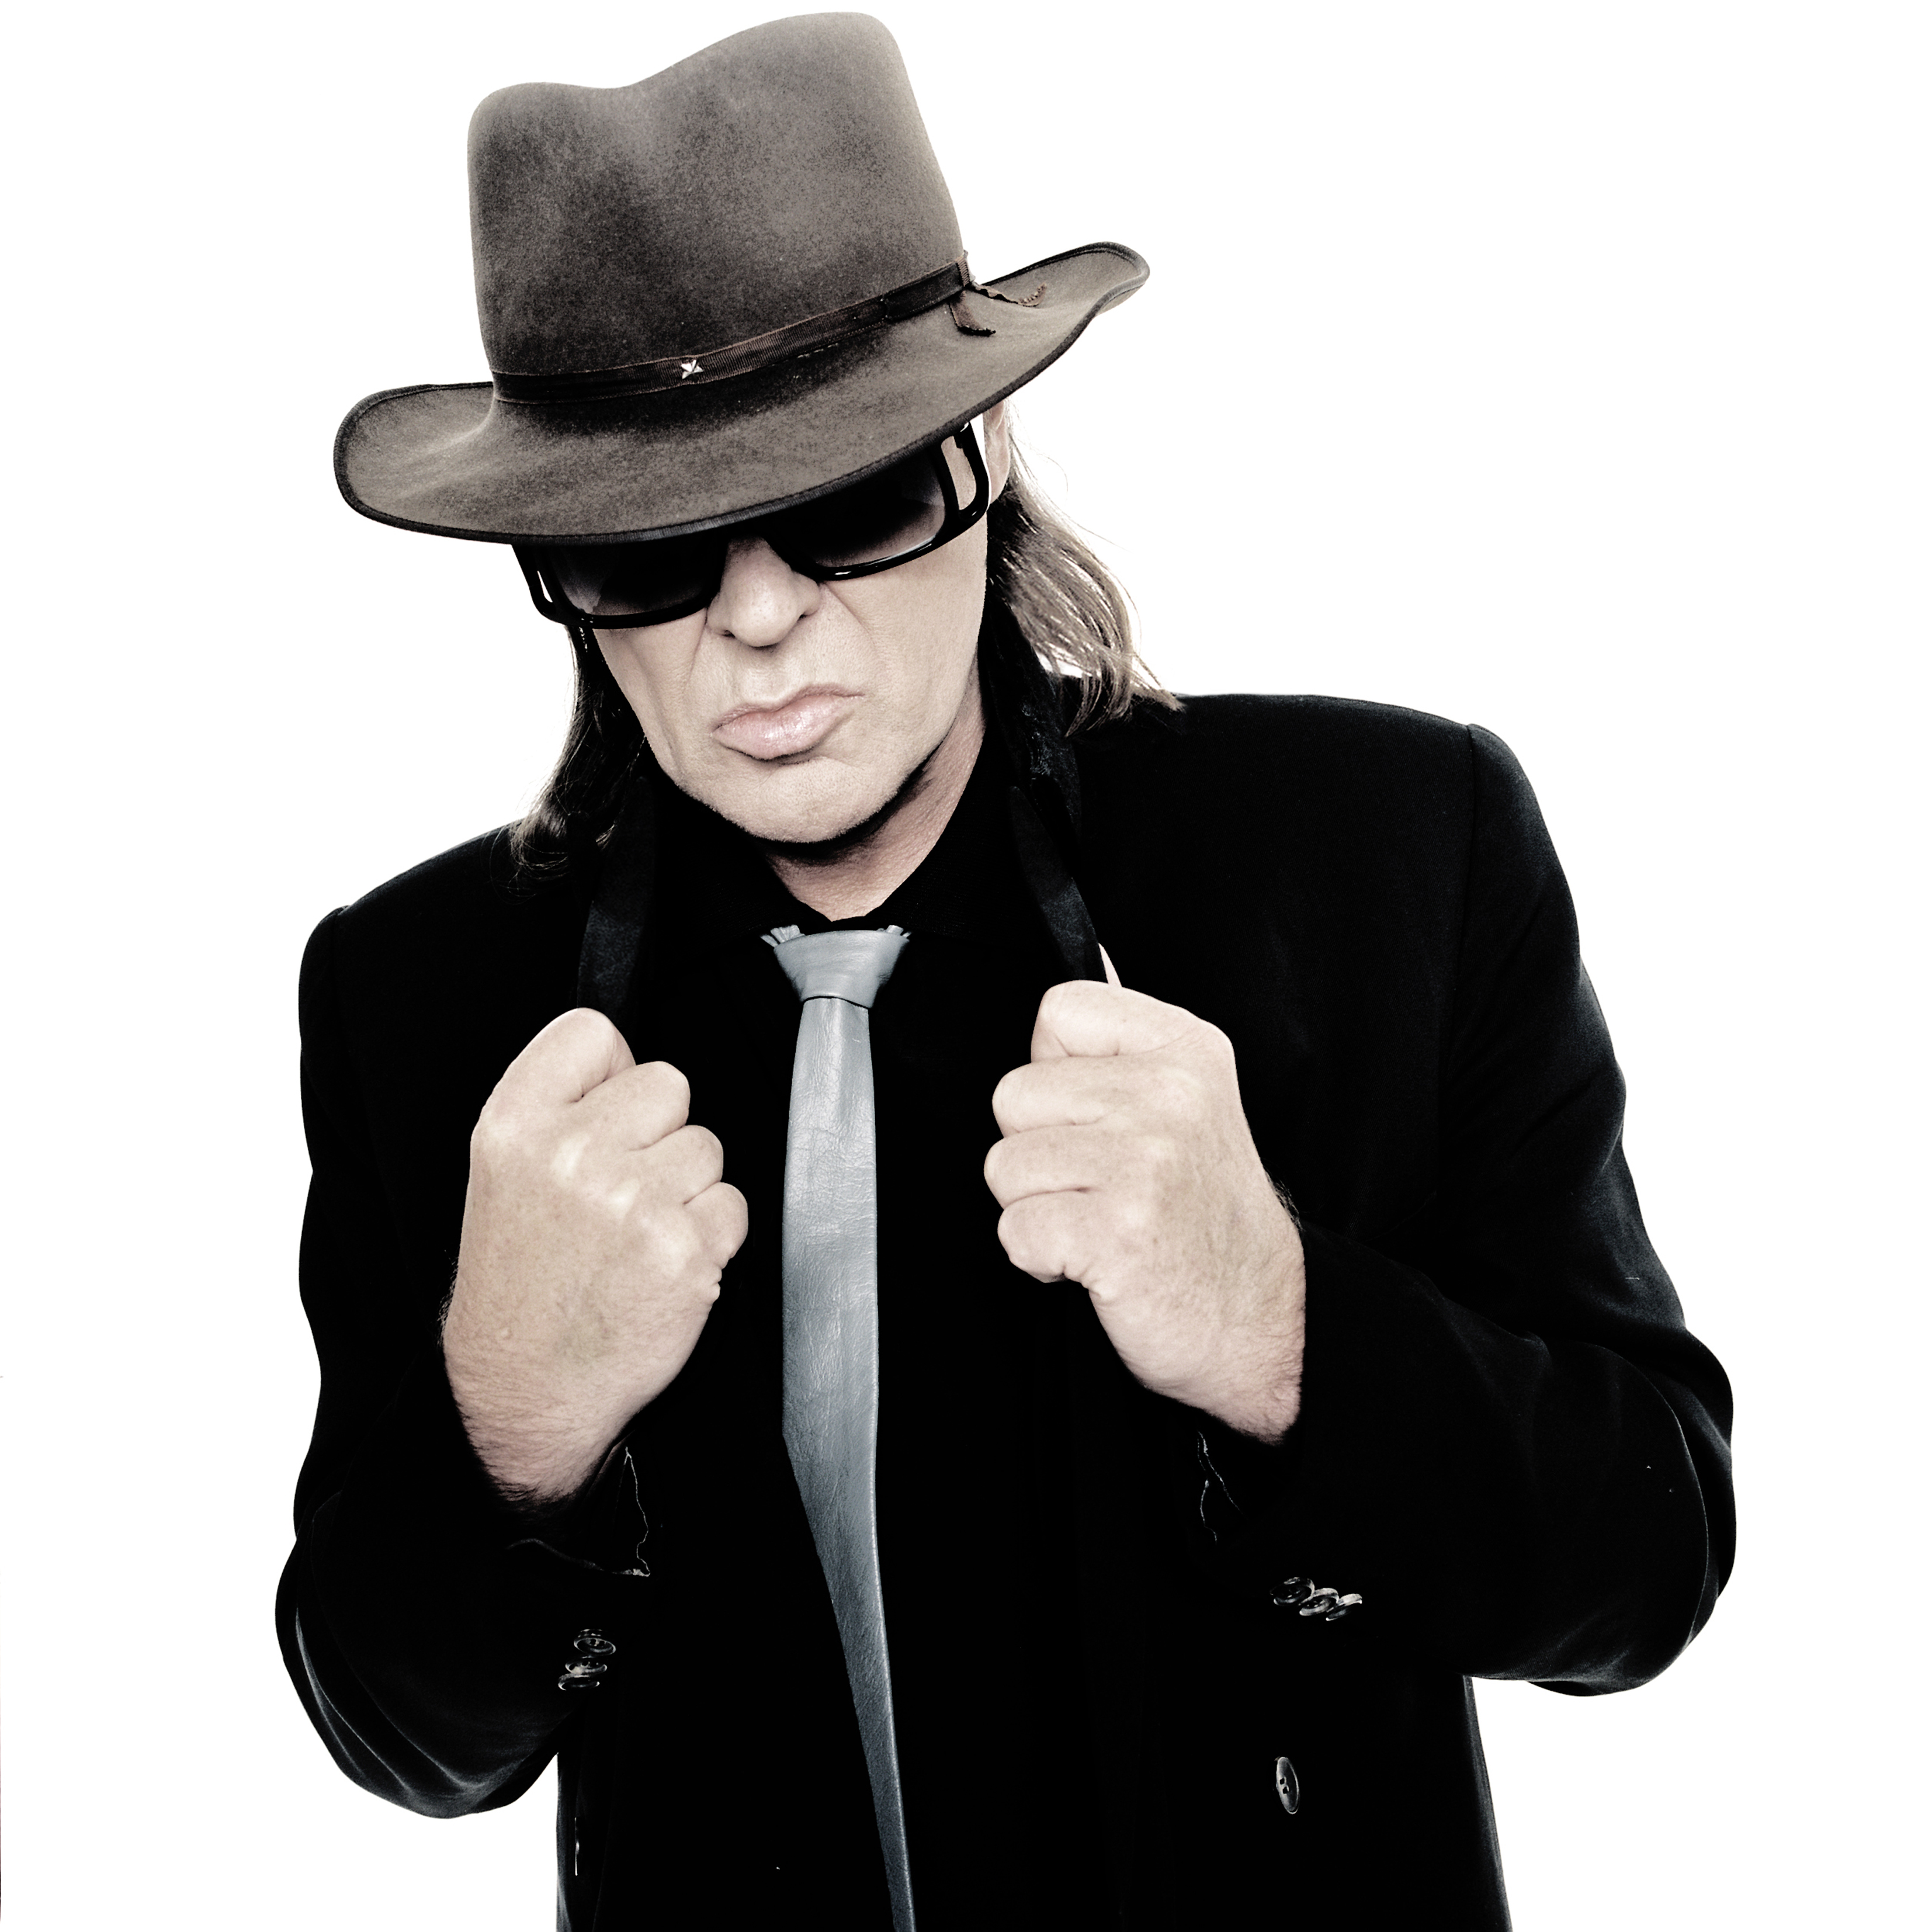 Udo Lindenberg T | Free Images at Clker.com - vector clip art online, royalty free & public domain